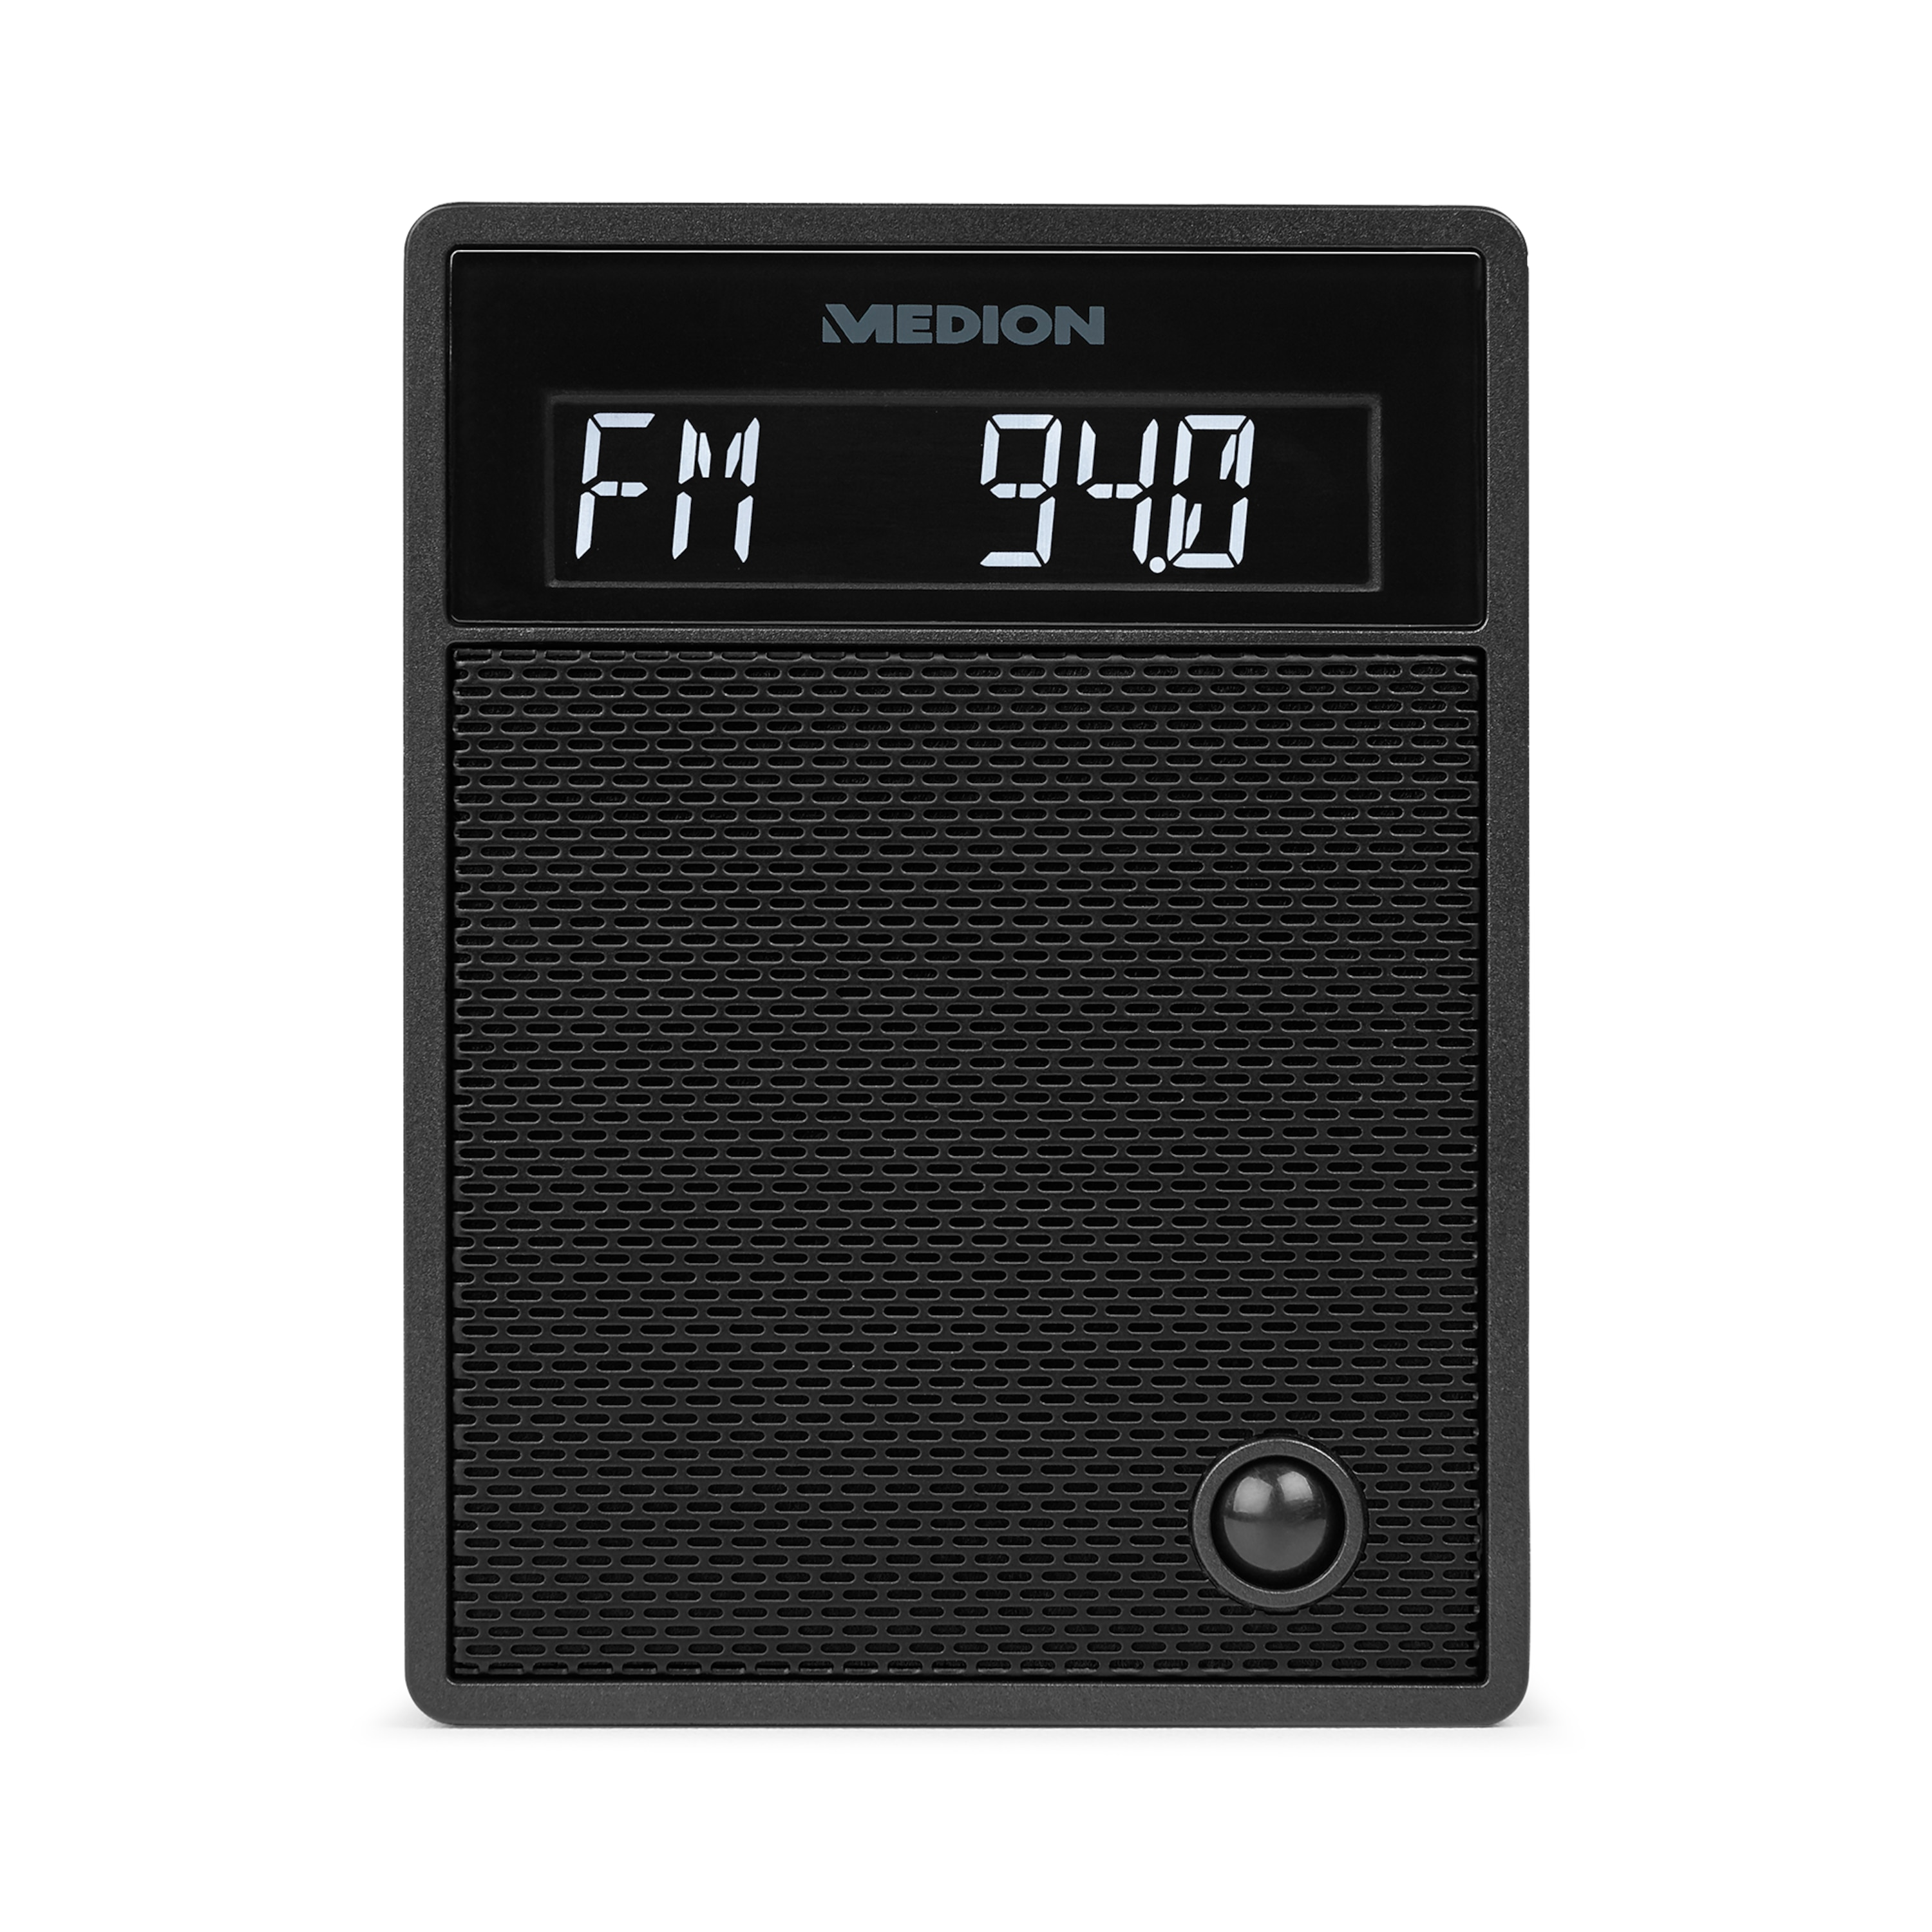 MEDION® LIFE® P65702 Bluetooth® Steckdosenradio mit LC-Display, NFC, PLL-UKW Radio, Freisprechfunktion, USB-Ladefunktion (B-Ware)